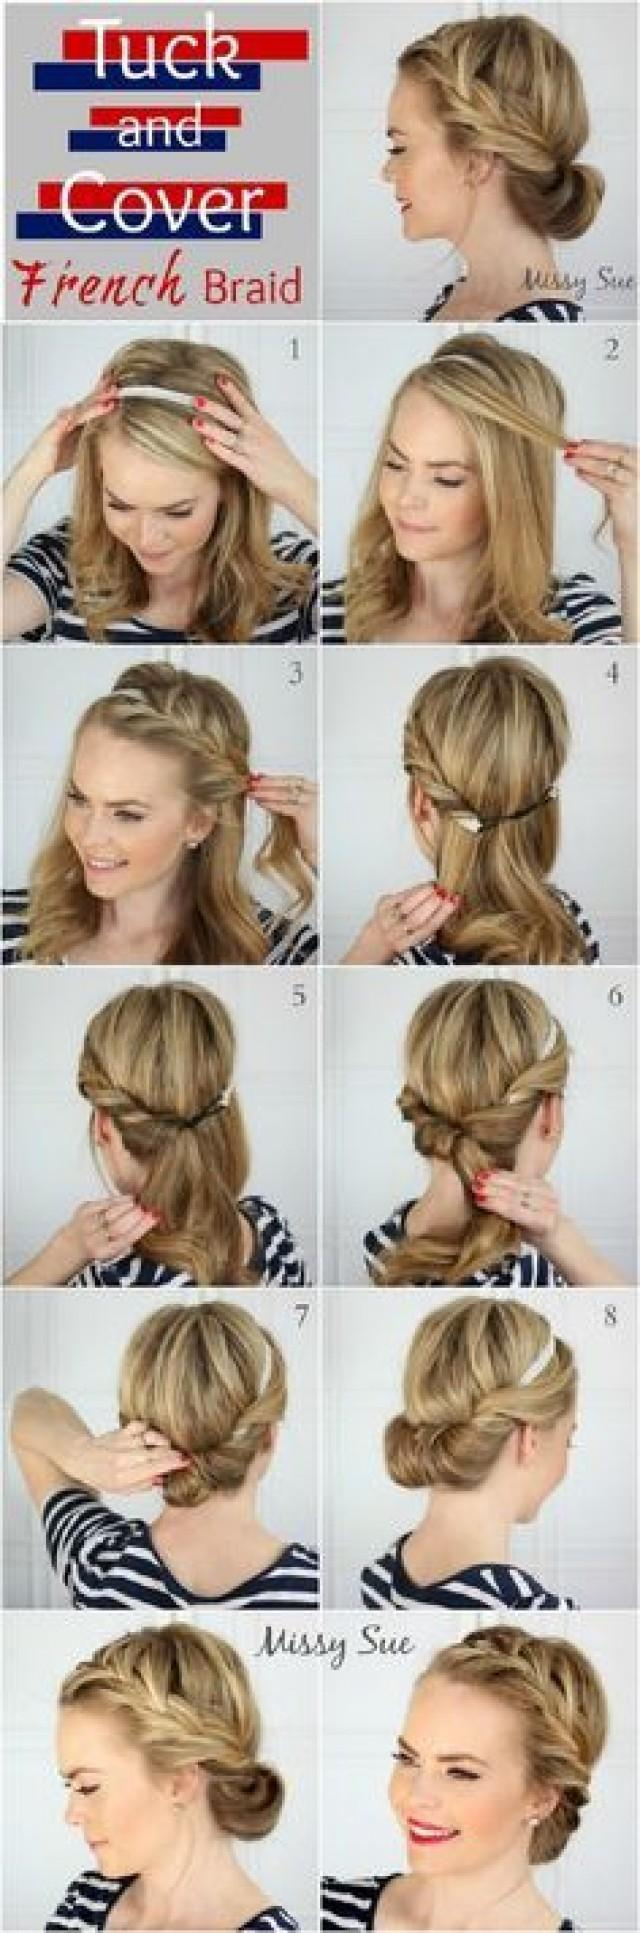 10 Easy Hairstyles For Bangs To Get Them Out Of Your Face 2637380 Weddbook